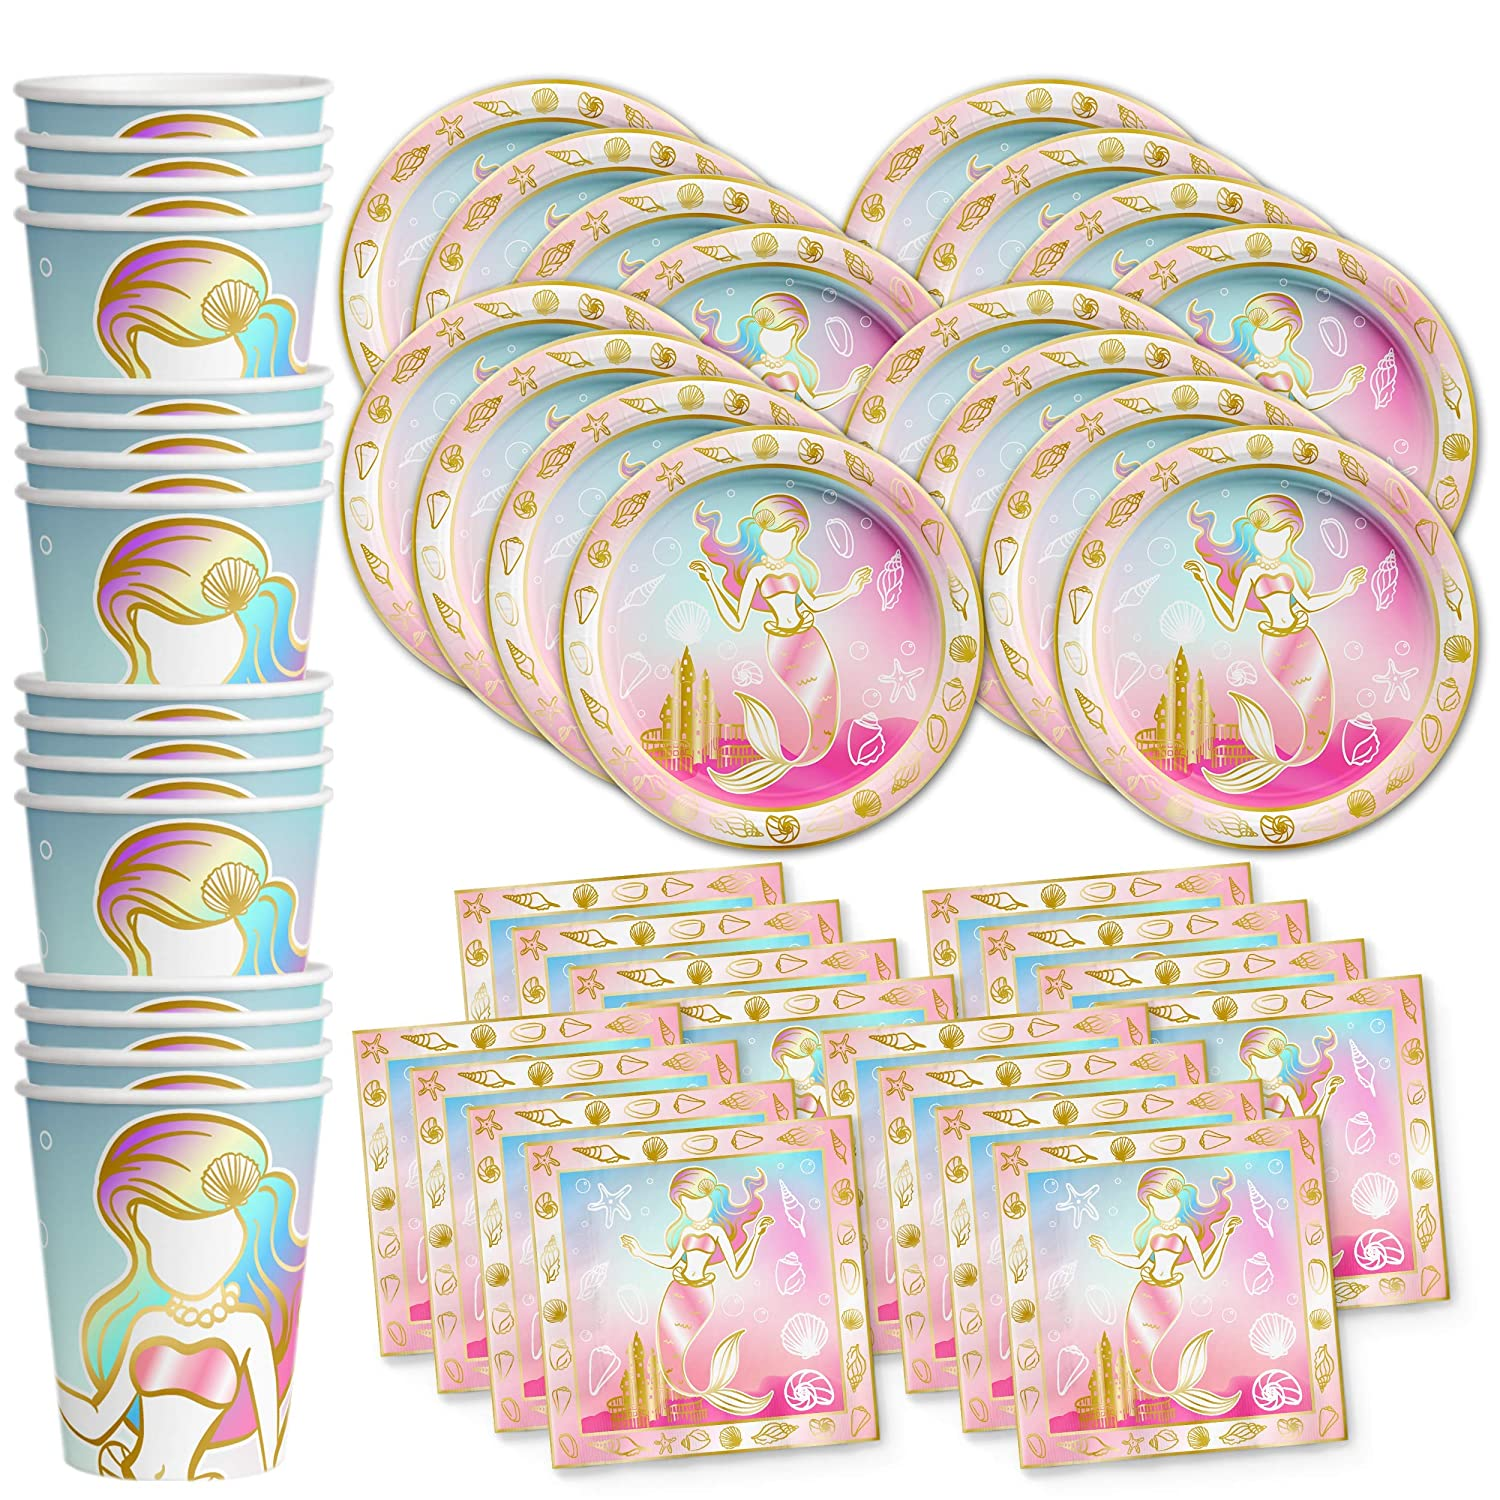 Mermaid Party Bundles for 16 Guests Page Two